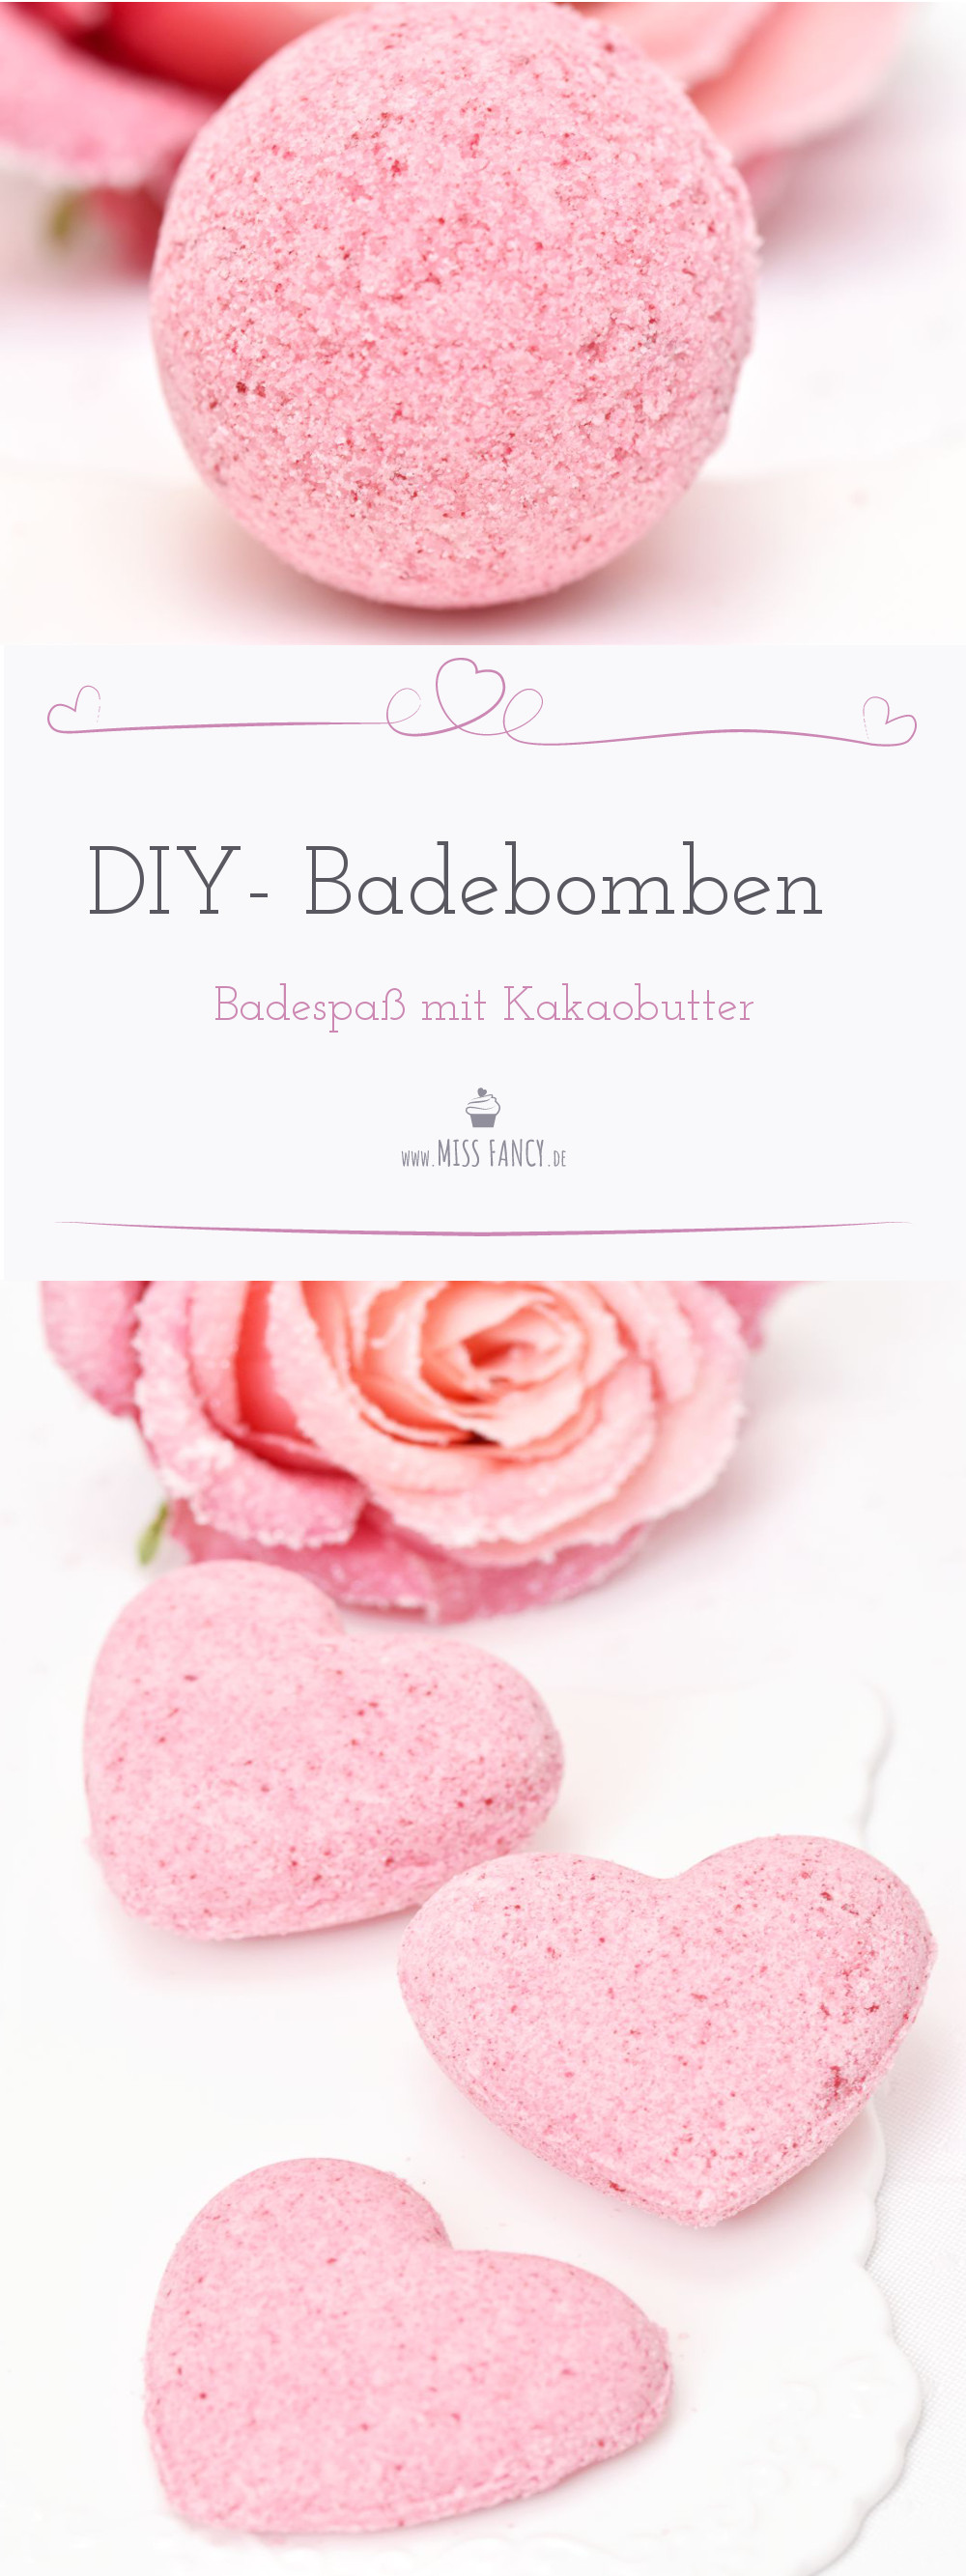 diy-badebomben-missfancy